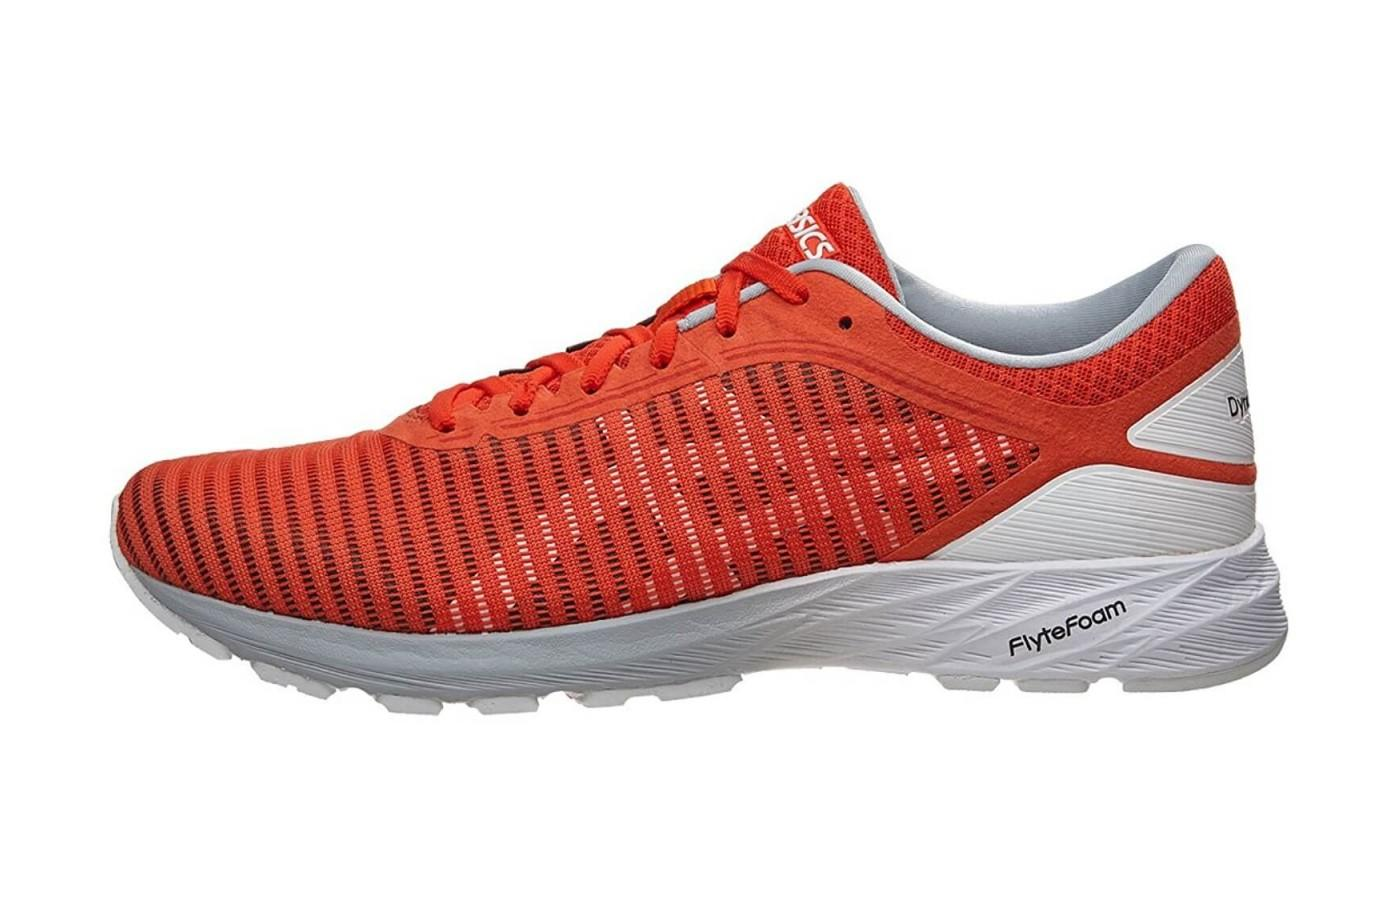 The midsole features a lightweight cushioning.